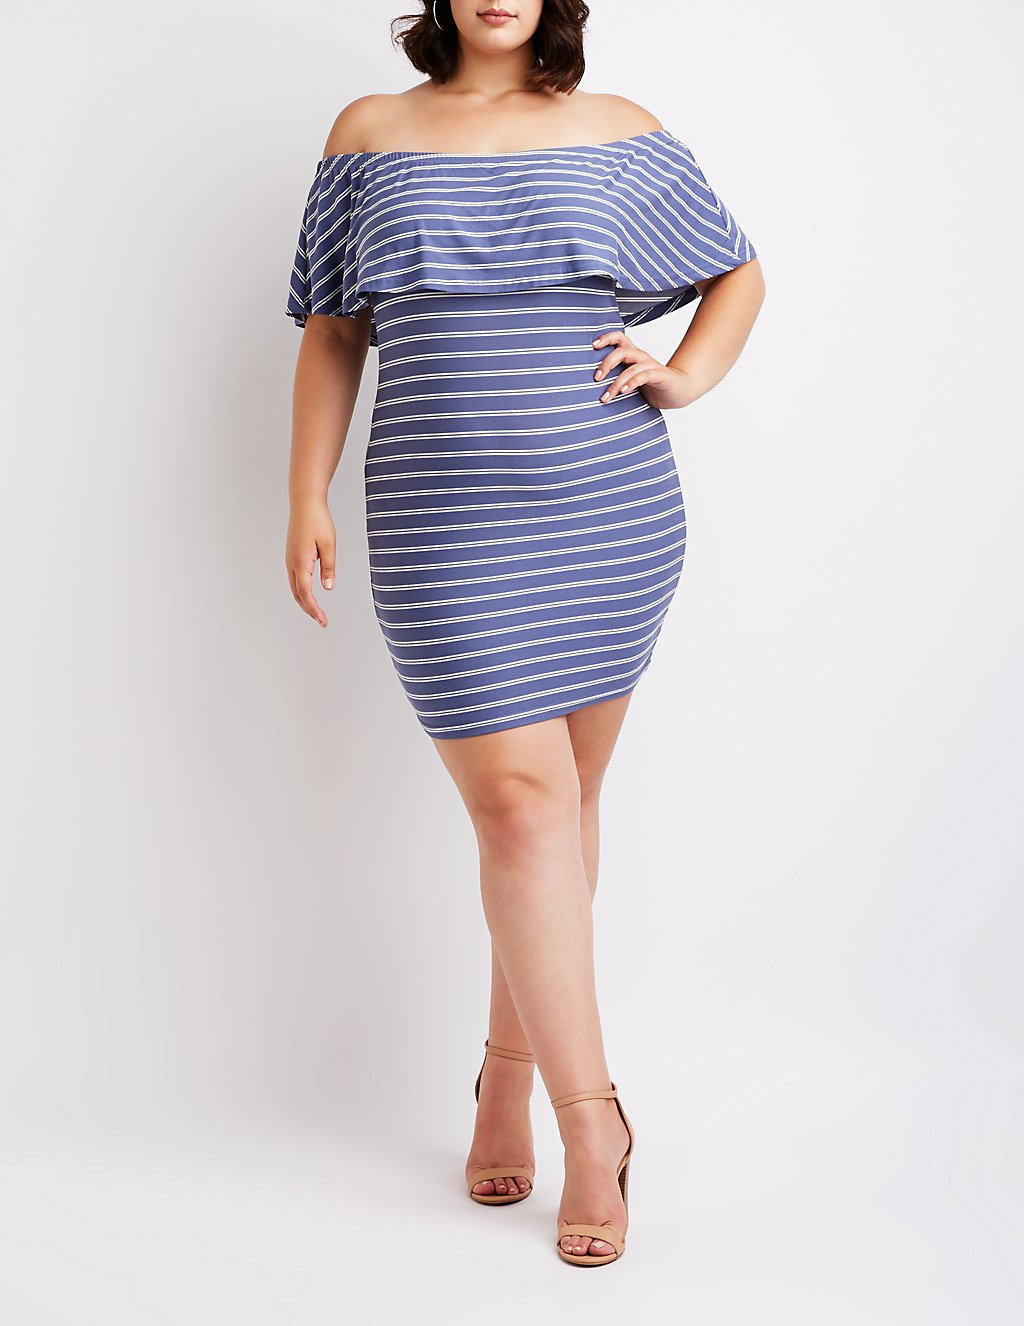 9723a93f2dd Flirty Summer Plus Size Dresses Under  50 From Charlotte Russe